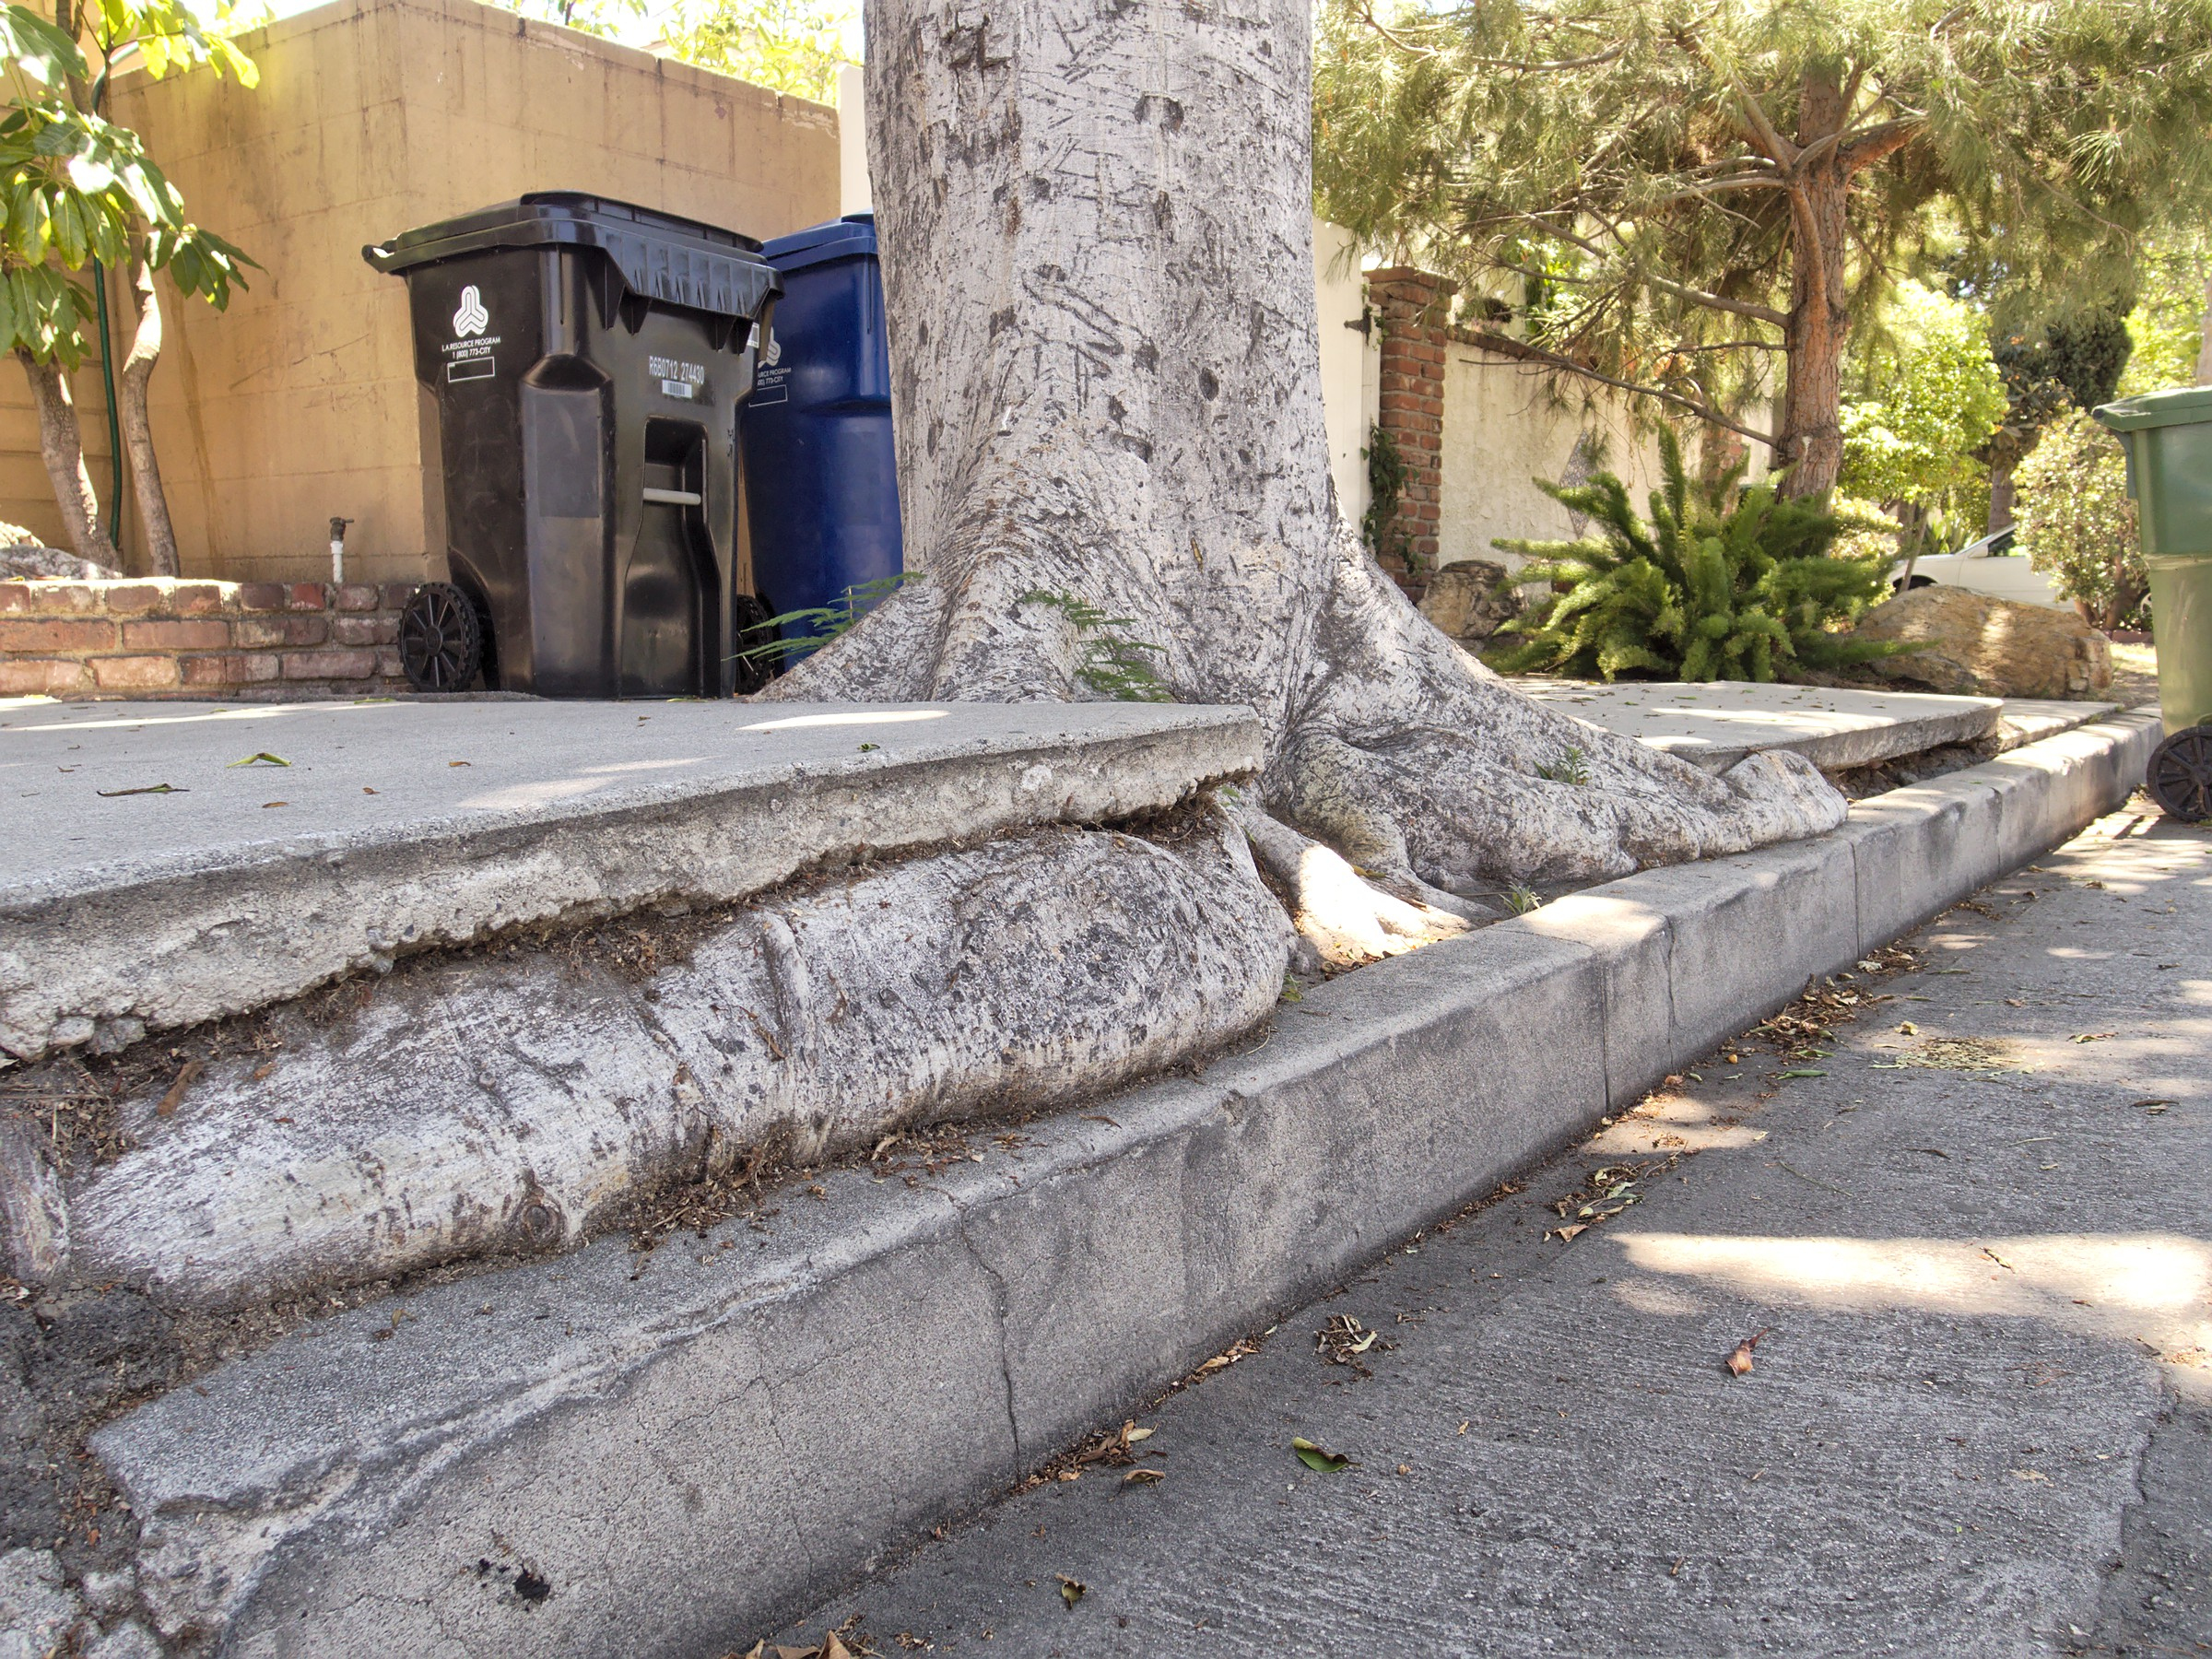 Pictured: If left unchecked, encroaching roots can damage sidewalks